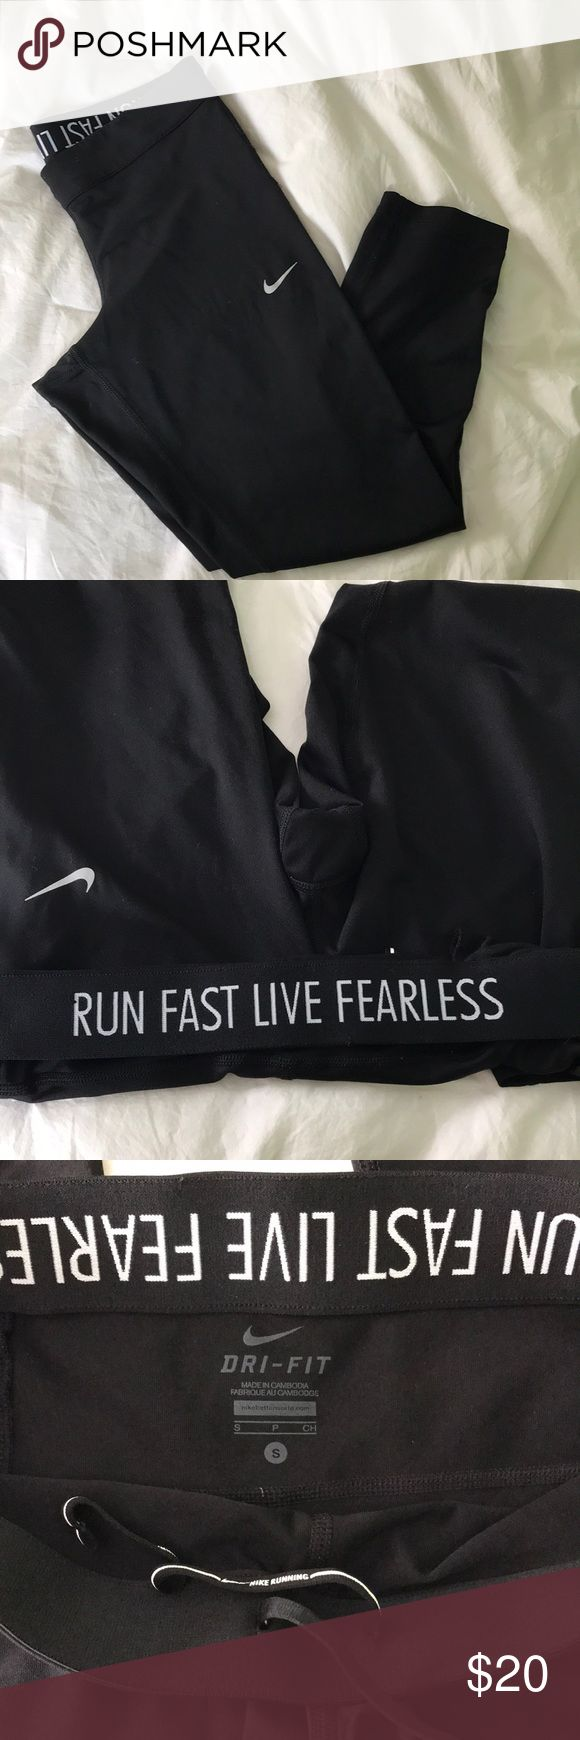 """Nike Running Tights/Leggings Like new condition, Nike Running 3/4 length tights. Back zipper pocket, draw string ties and """"Run Fast Live Fearless"""" on waistband. Nike Pants Leggings"""